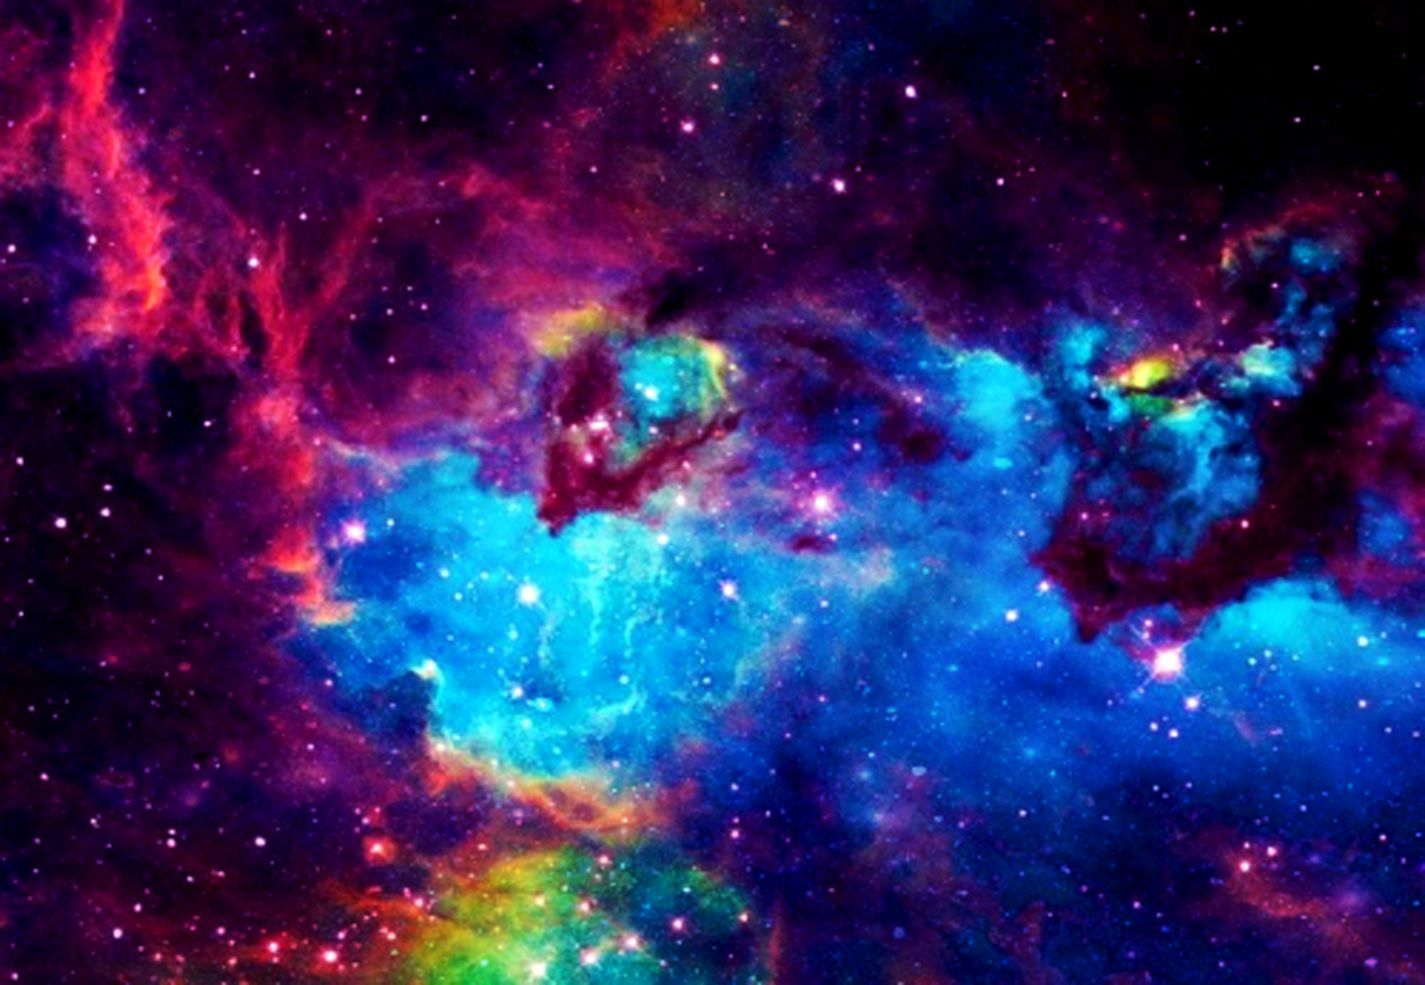 Hipster Galaxy Tumblr Wallpapers Top Free Hipster Galaxy Tumblr Backgrounds Wallpaperaccess